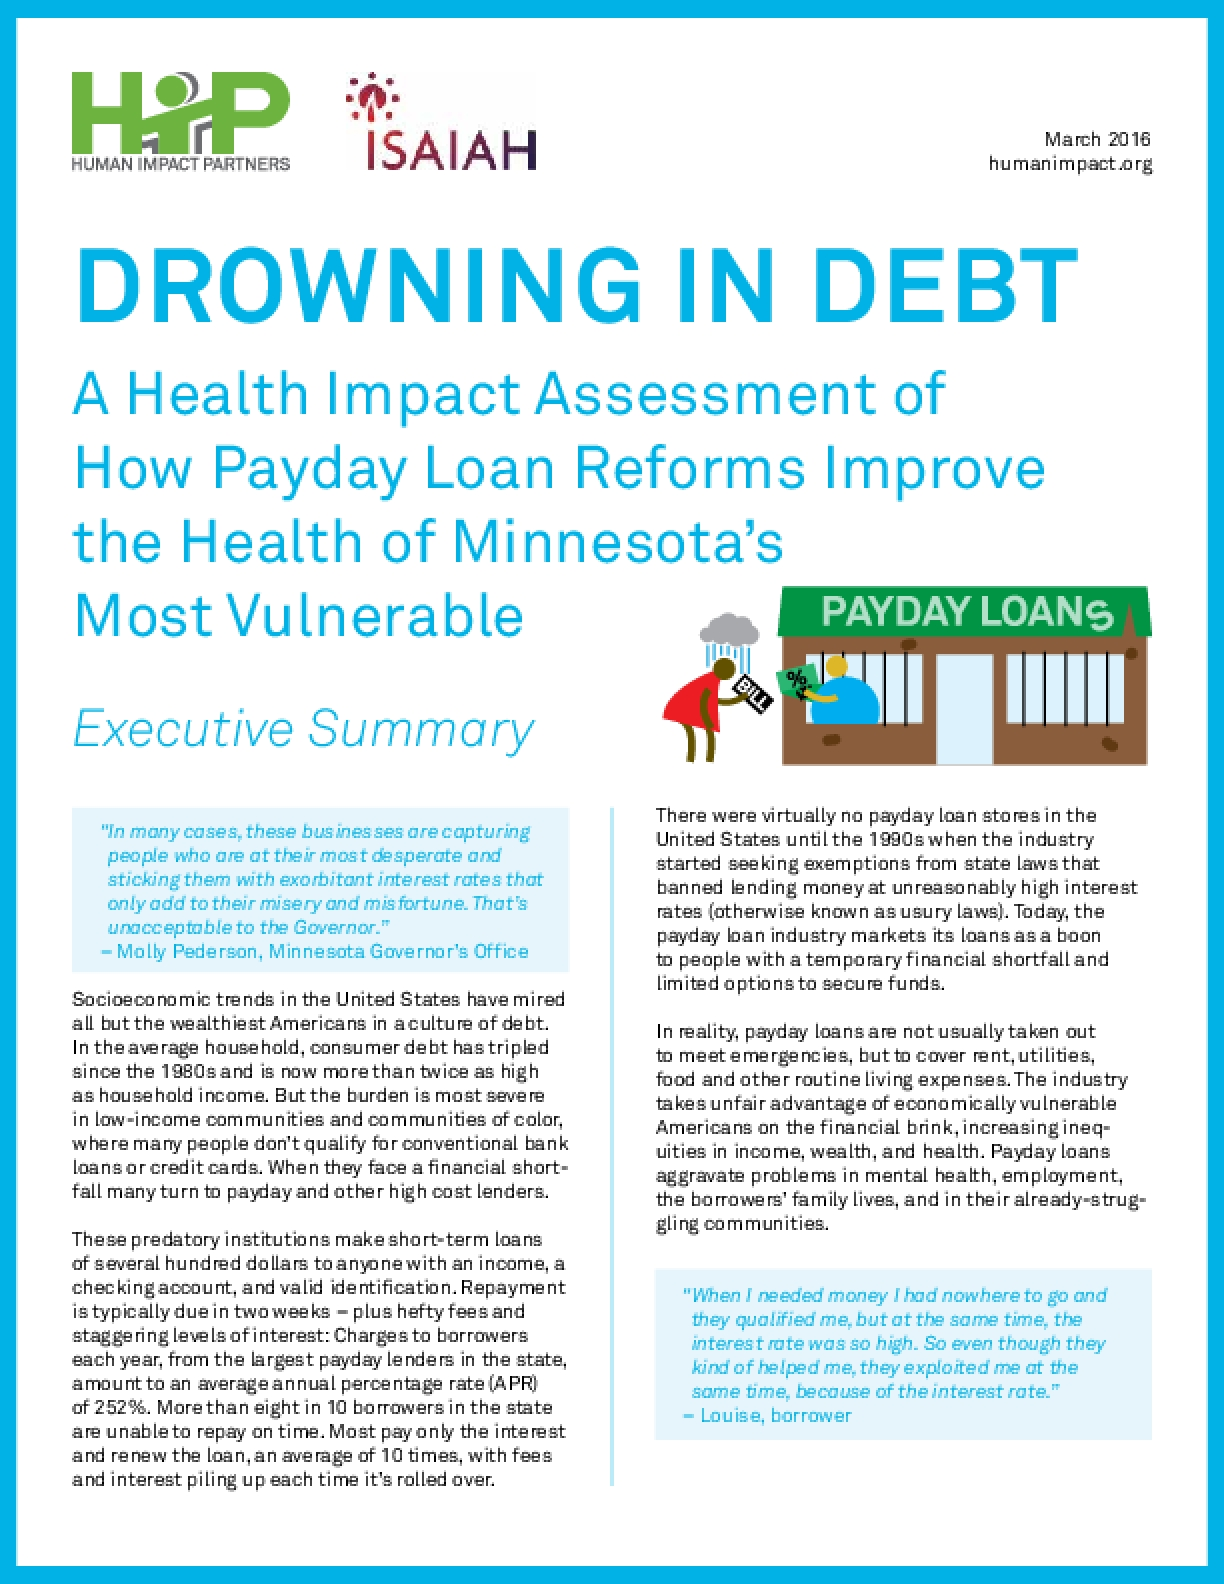 Drowning in Debt: A Health Impact Assessment of How Payday Loan Reforms Improve the Health of Minnesota's Most Vulnerable (Executive Summary)